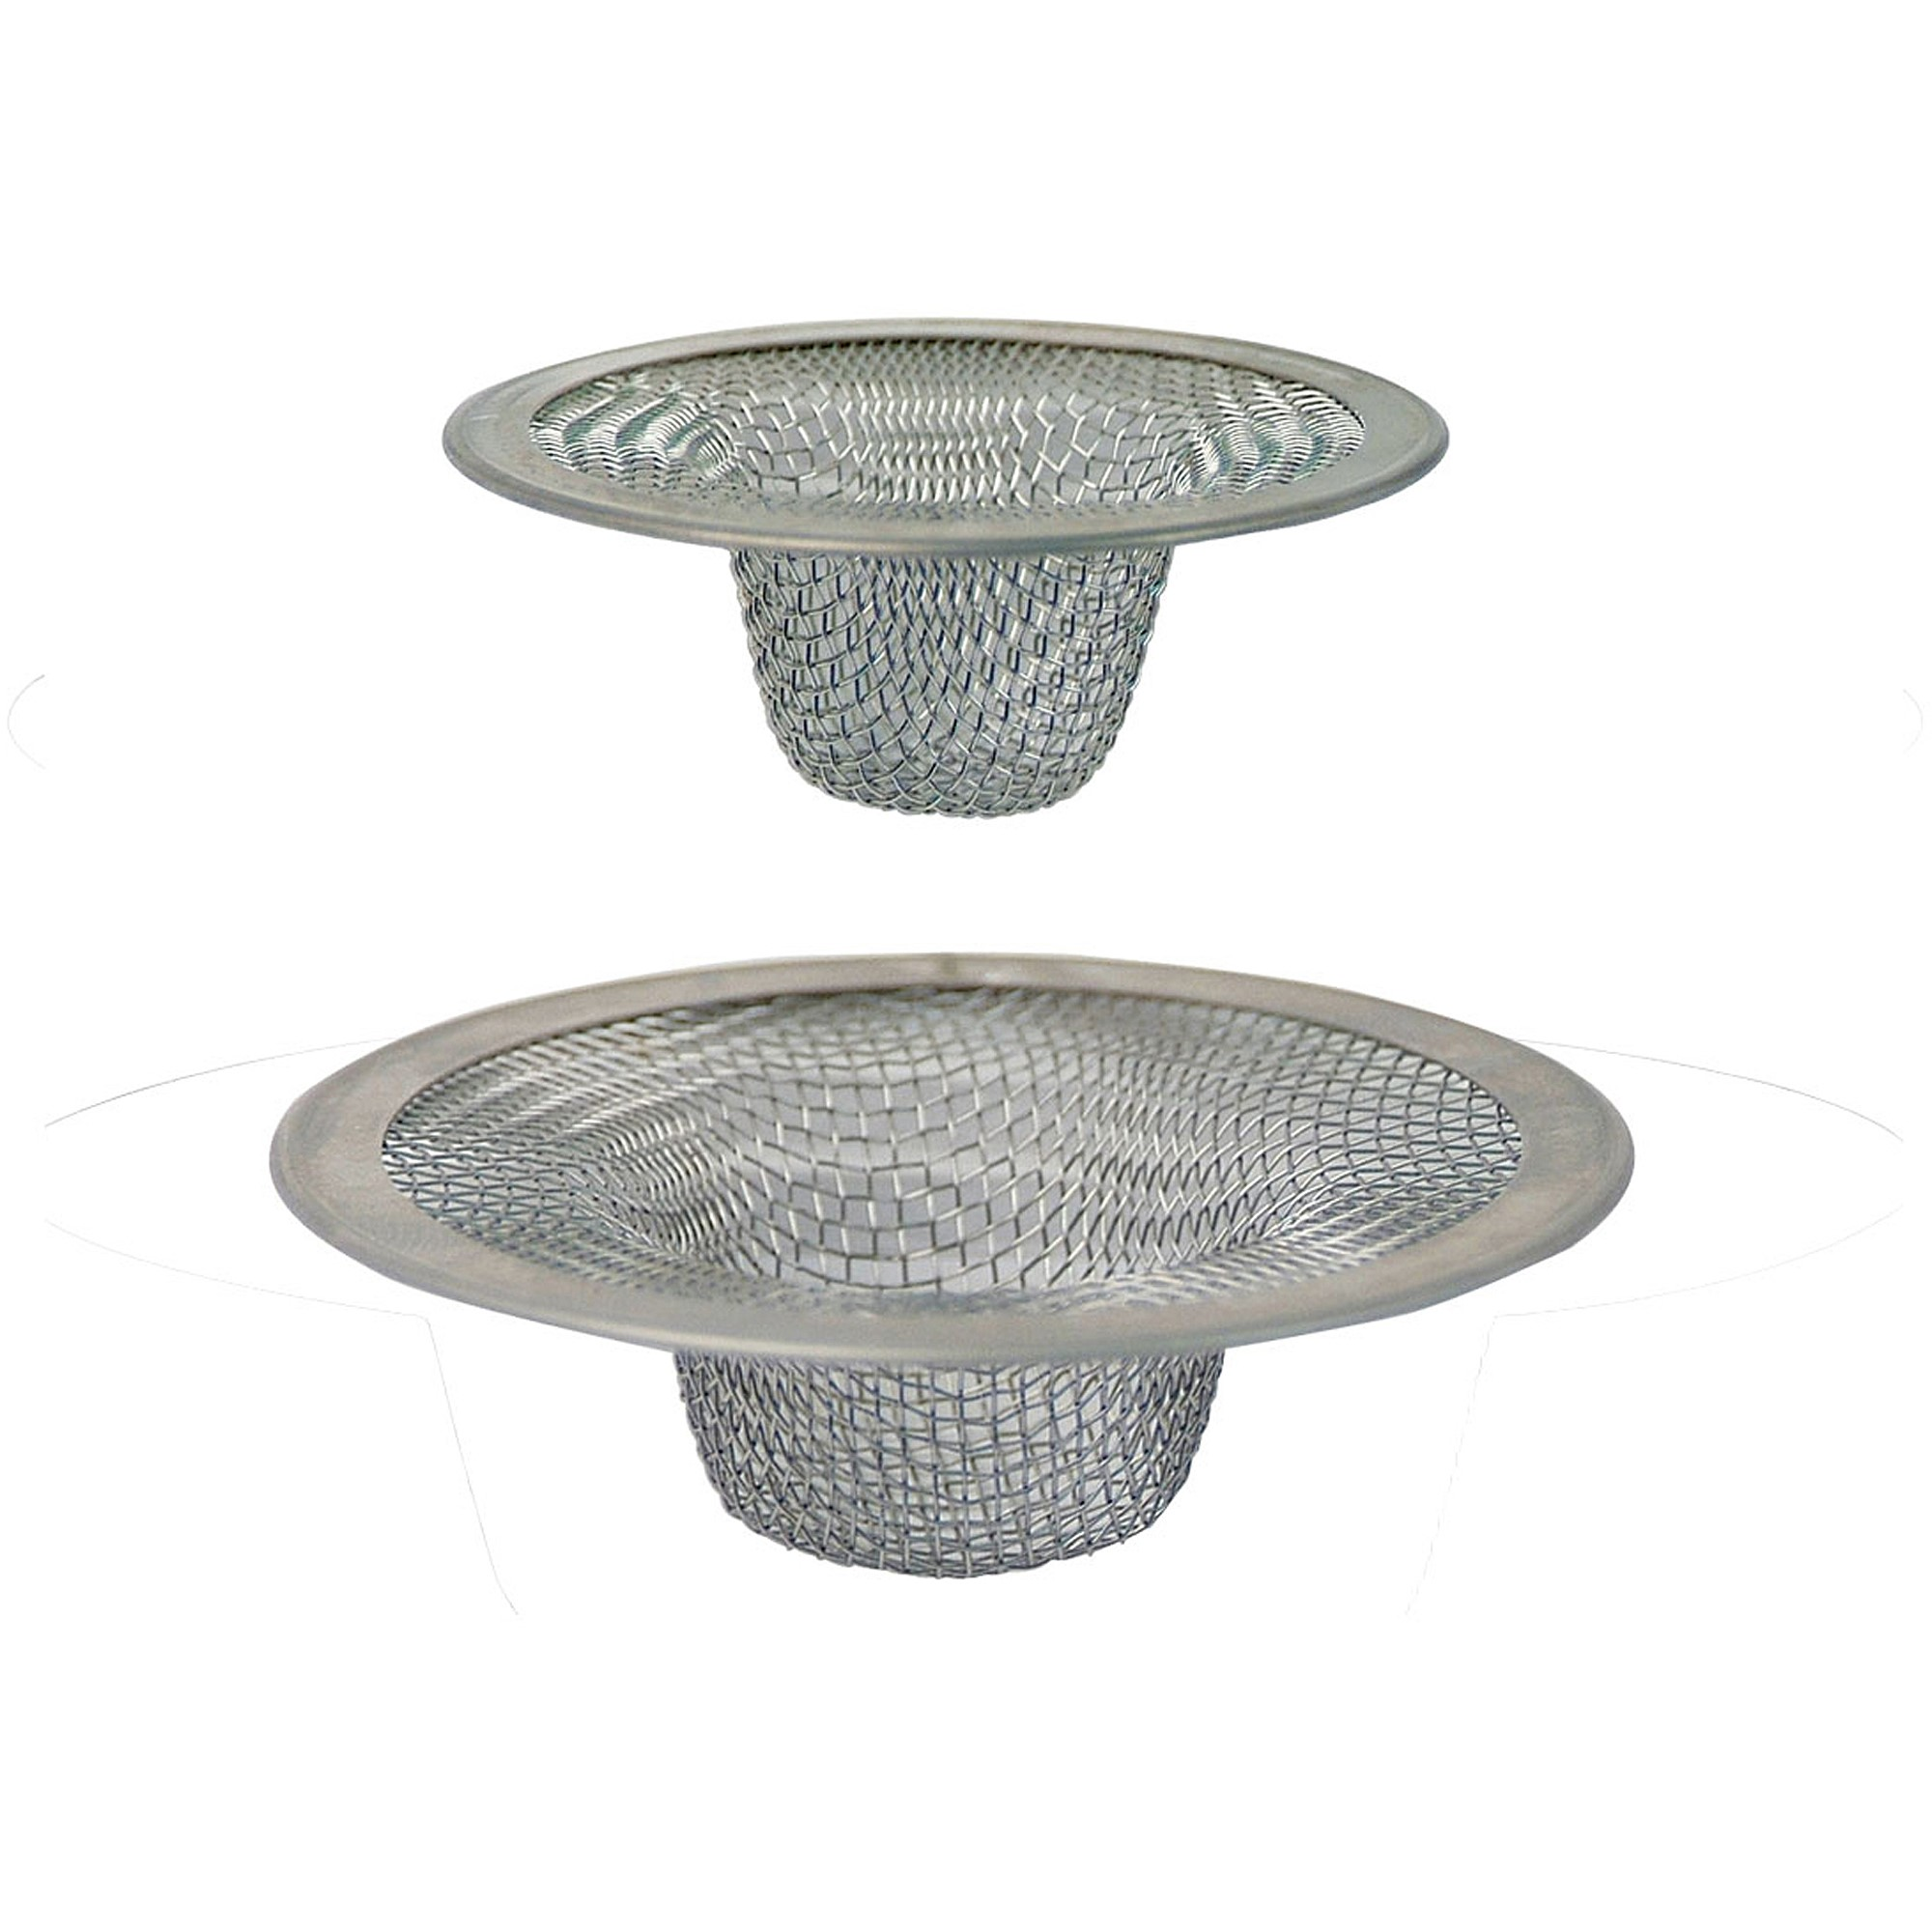 Peerless Mesh Drain Strainer, 2pc by Generic